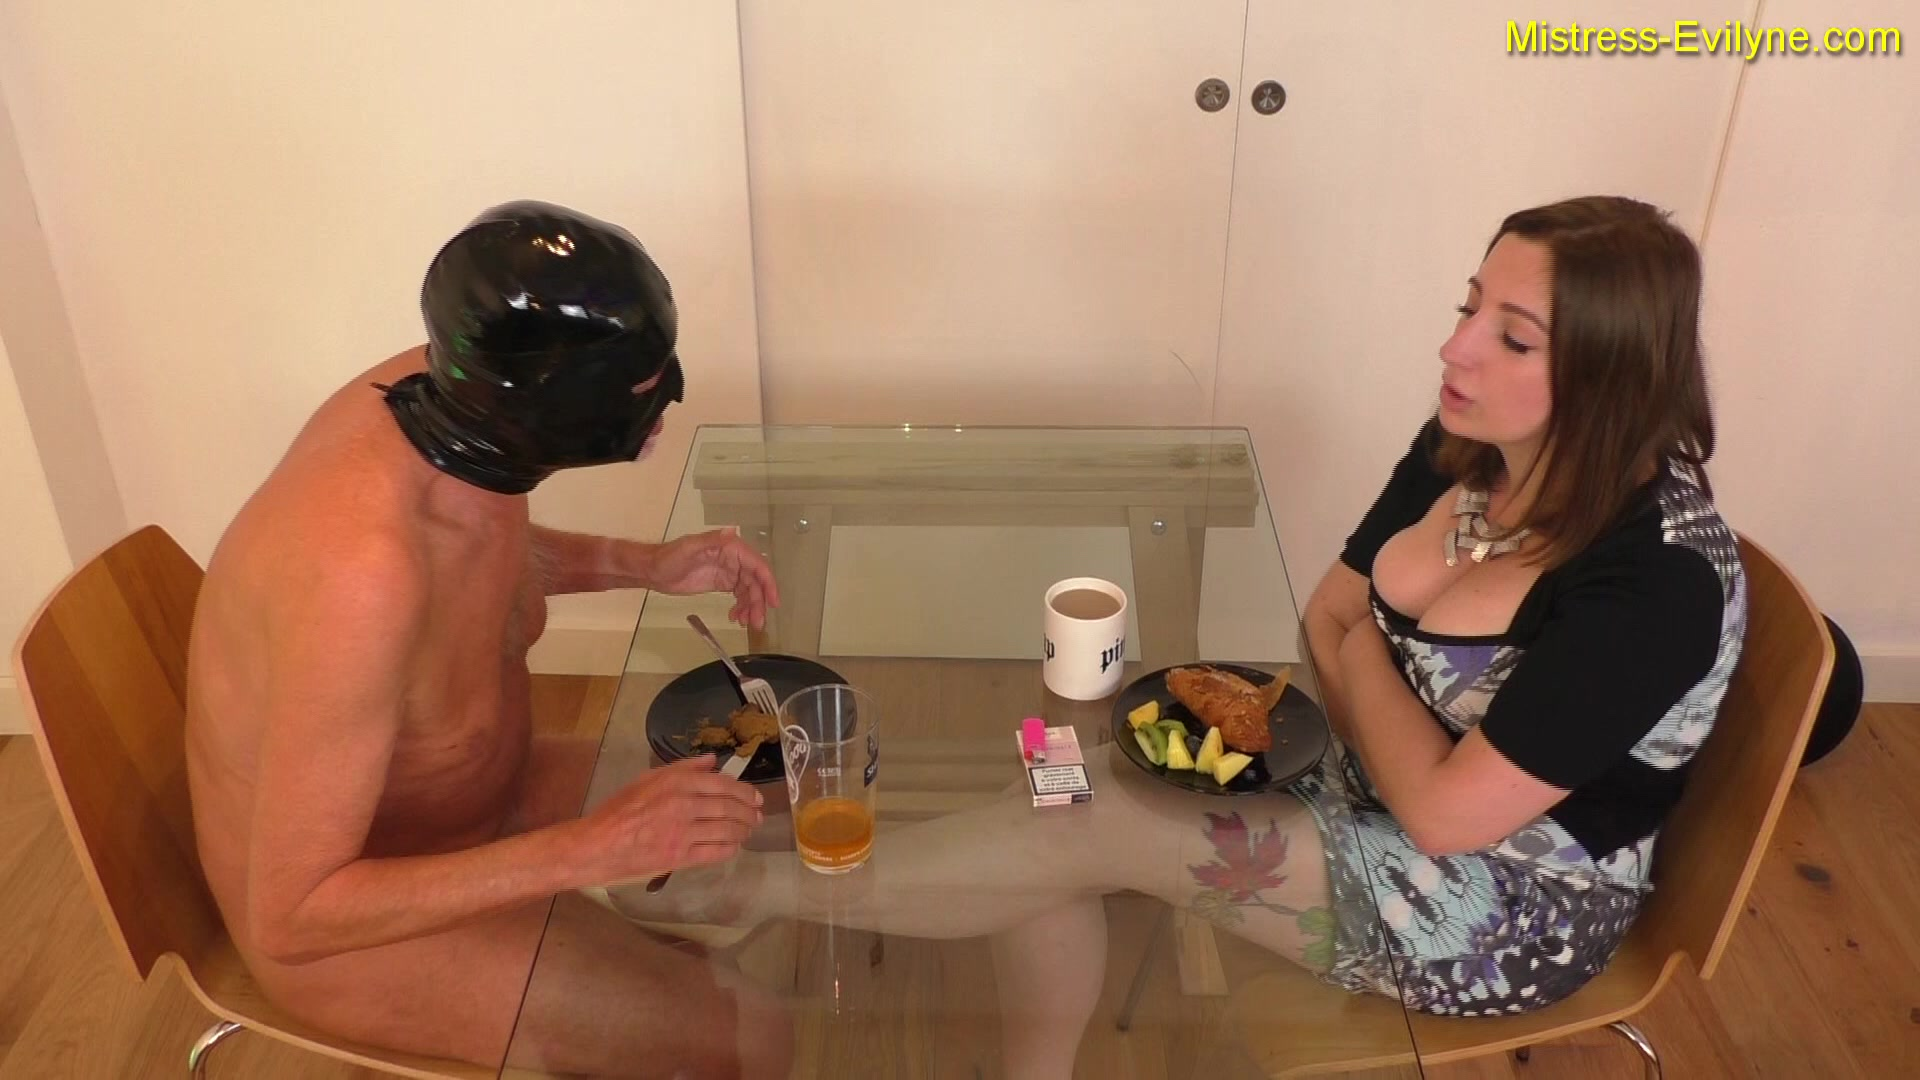 Mistress Evilyne - Breakfast is served! - Full-HD-1080p